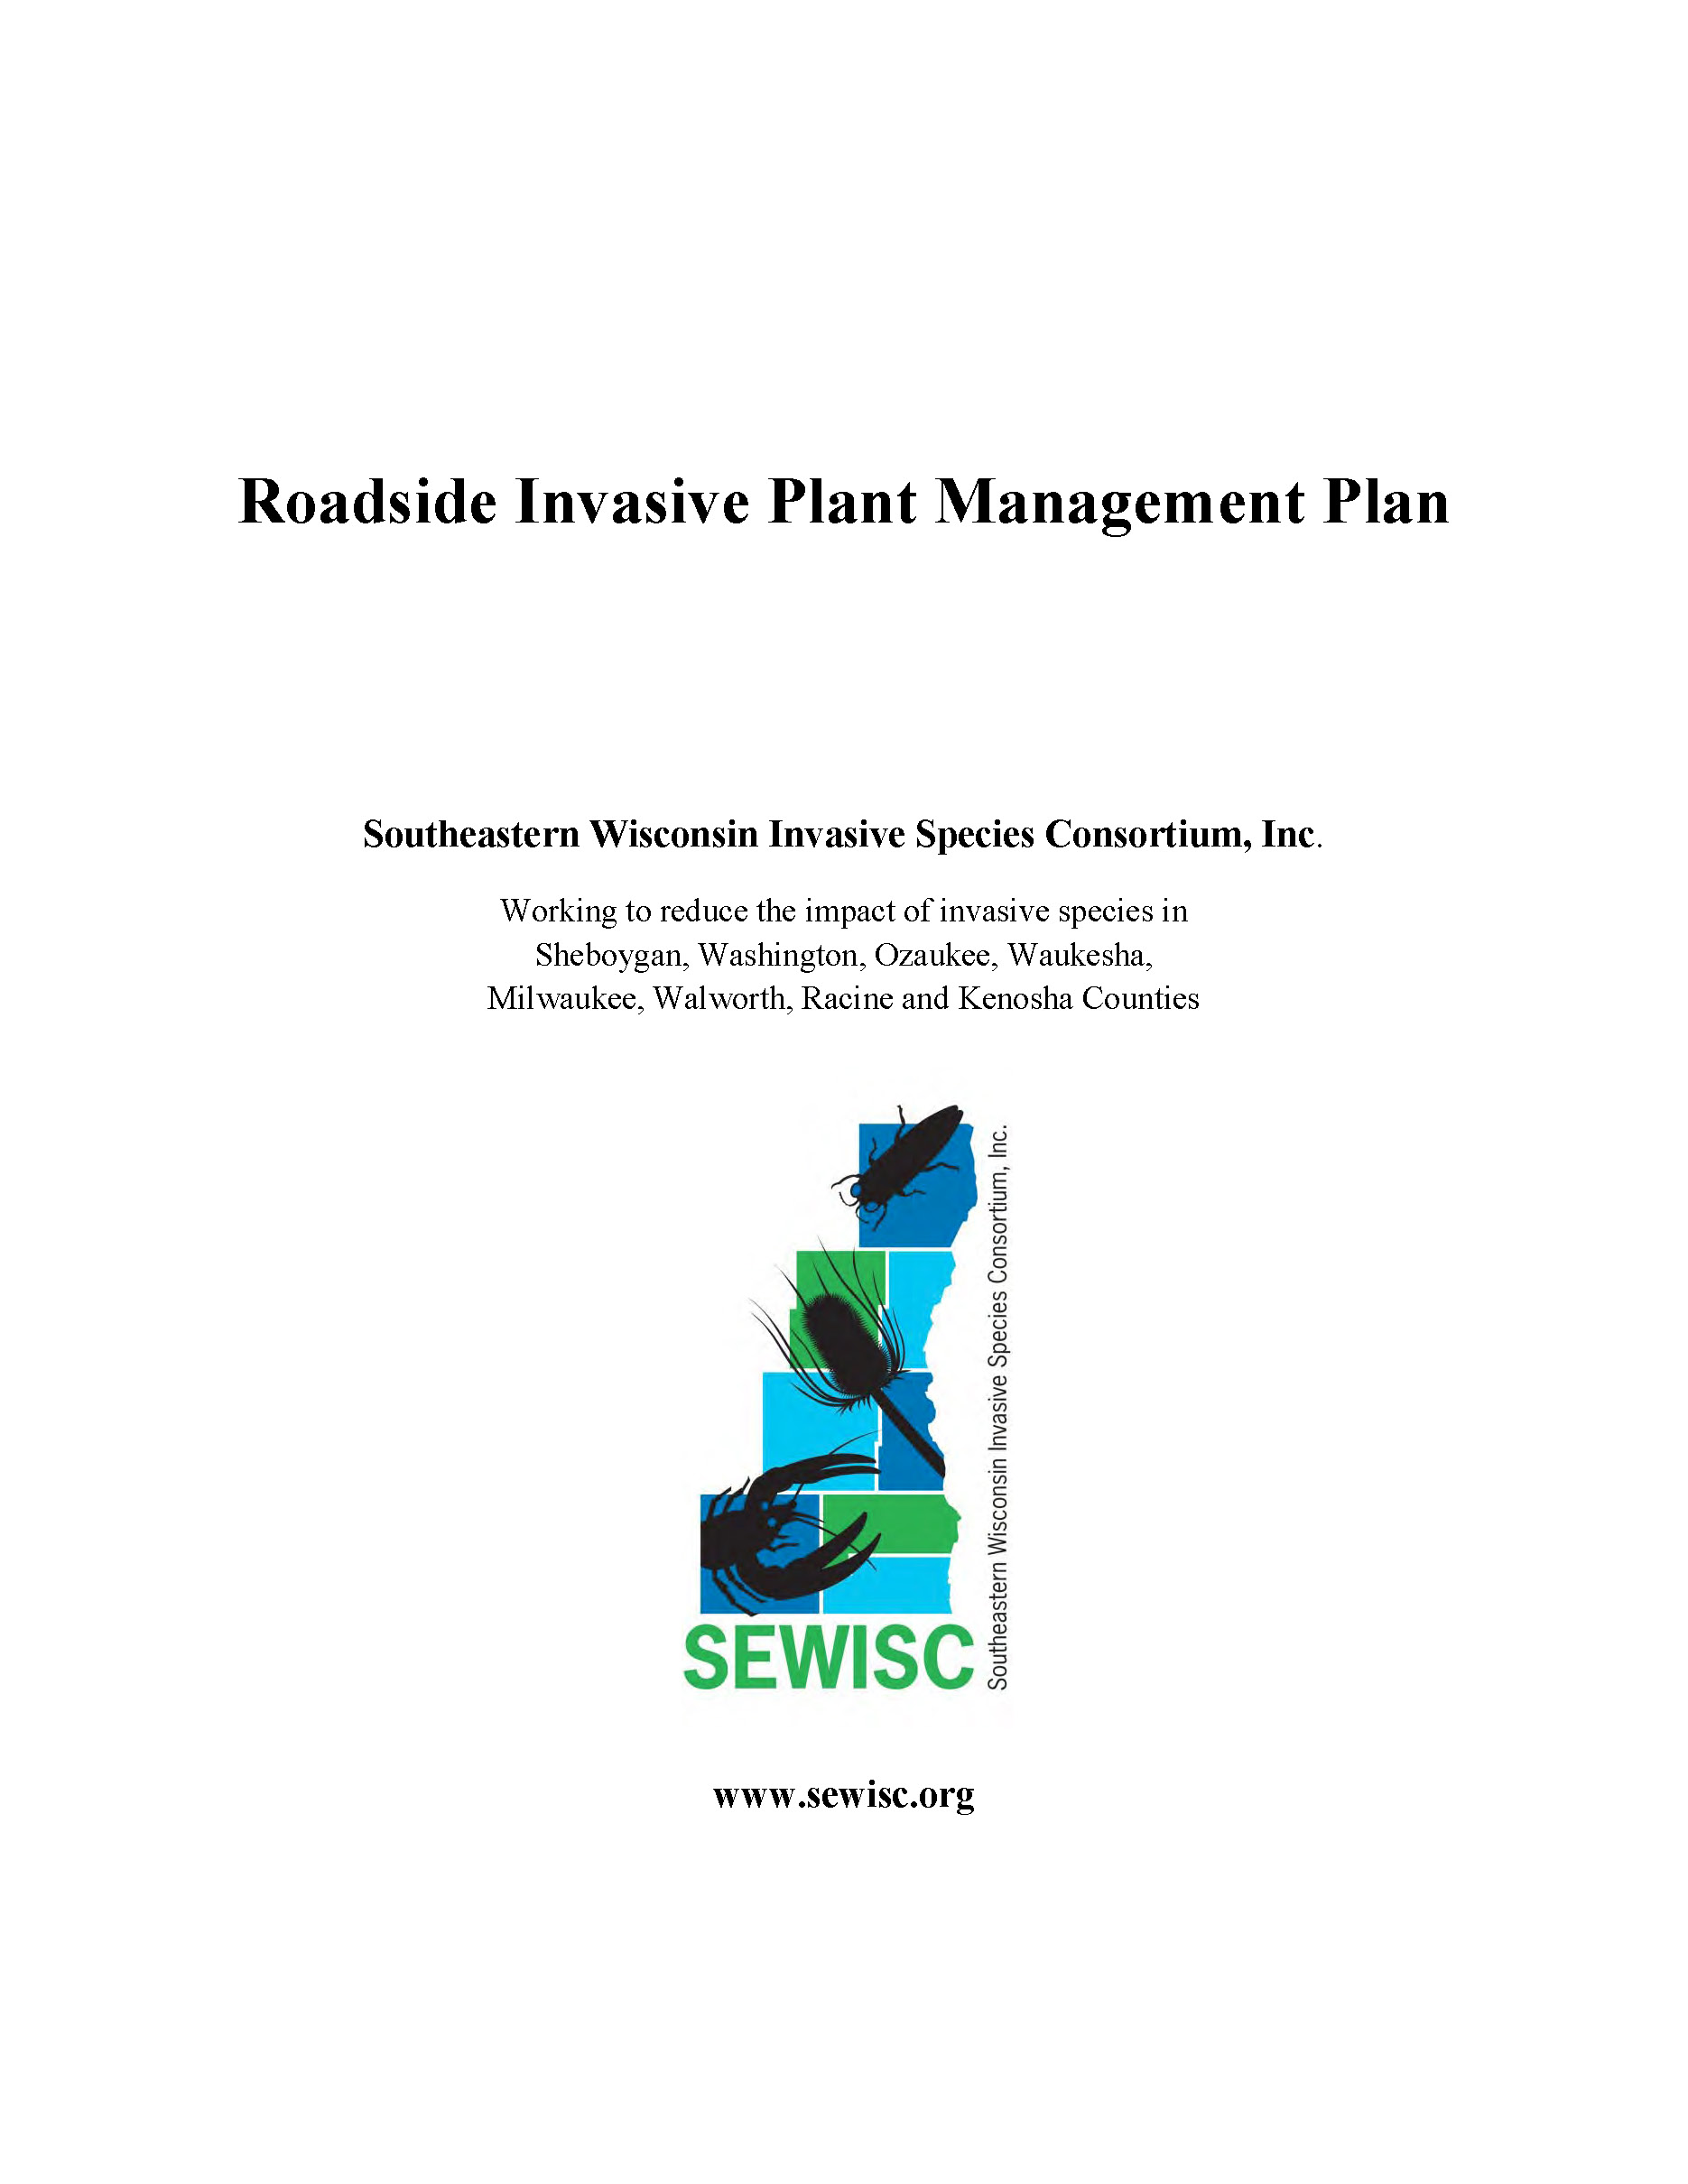 SEWISC ROW Invasive Species Management Plan page 1